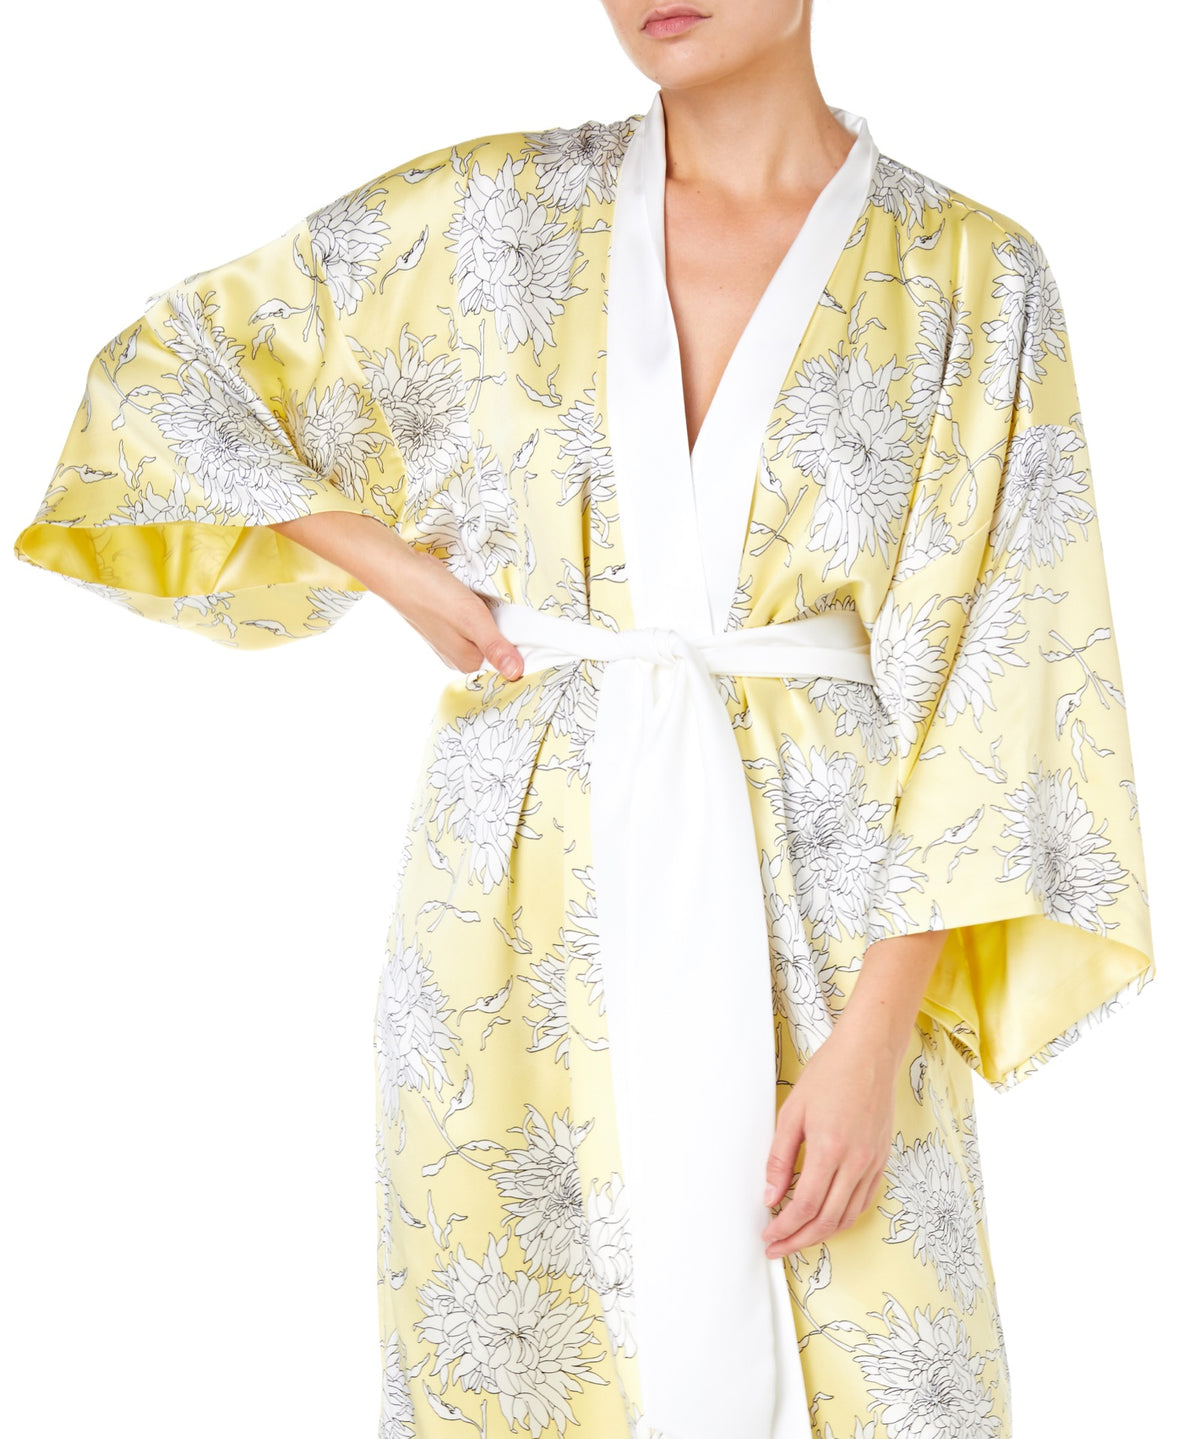 Olivia Von Halle Queenie Kira Full Length Women white and Yellow Robe